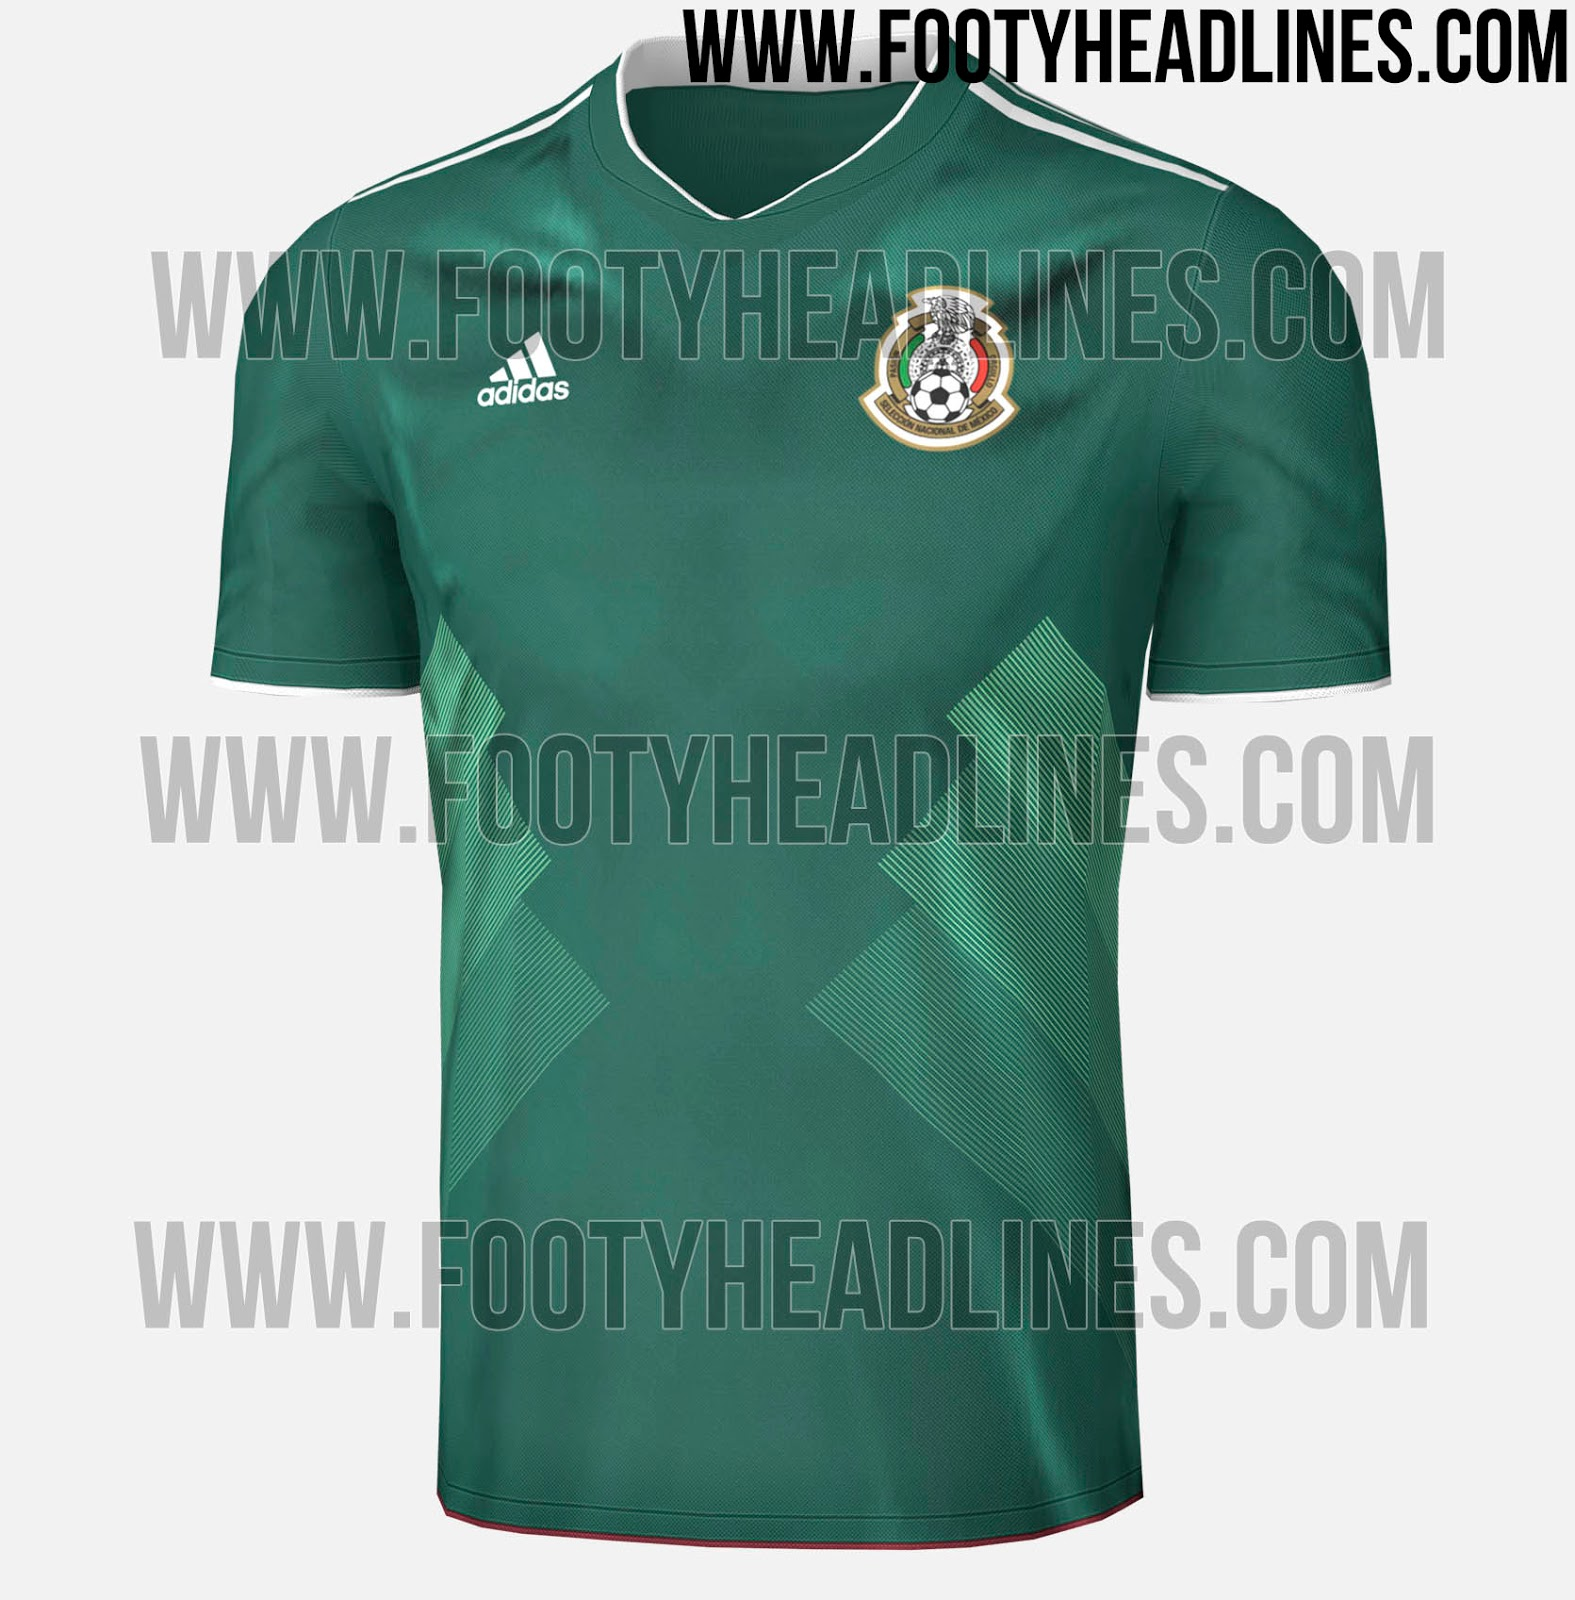 Mexico 2017 Home Kit Leaked Footy Headlines